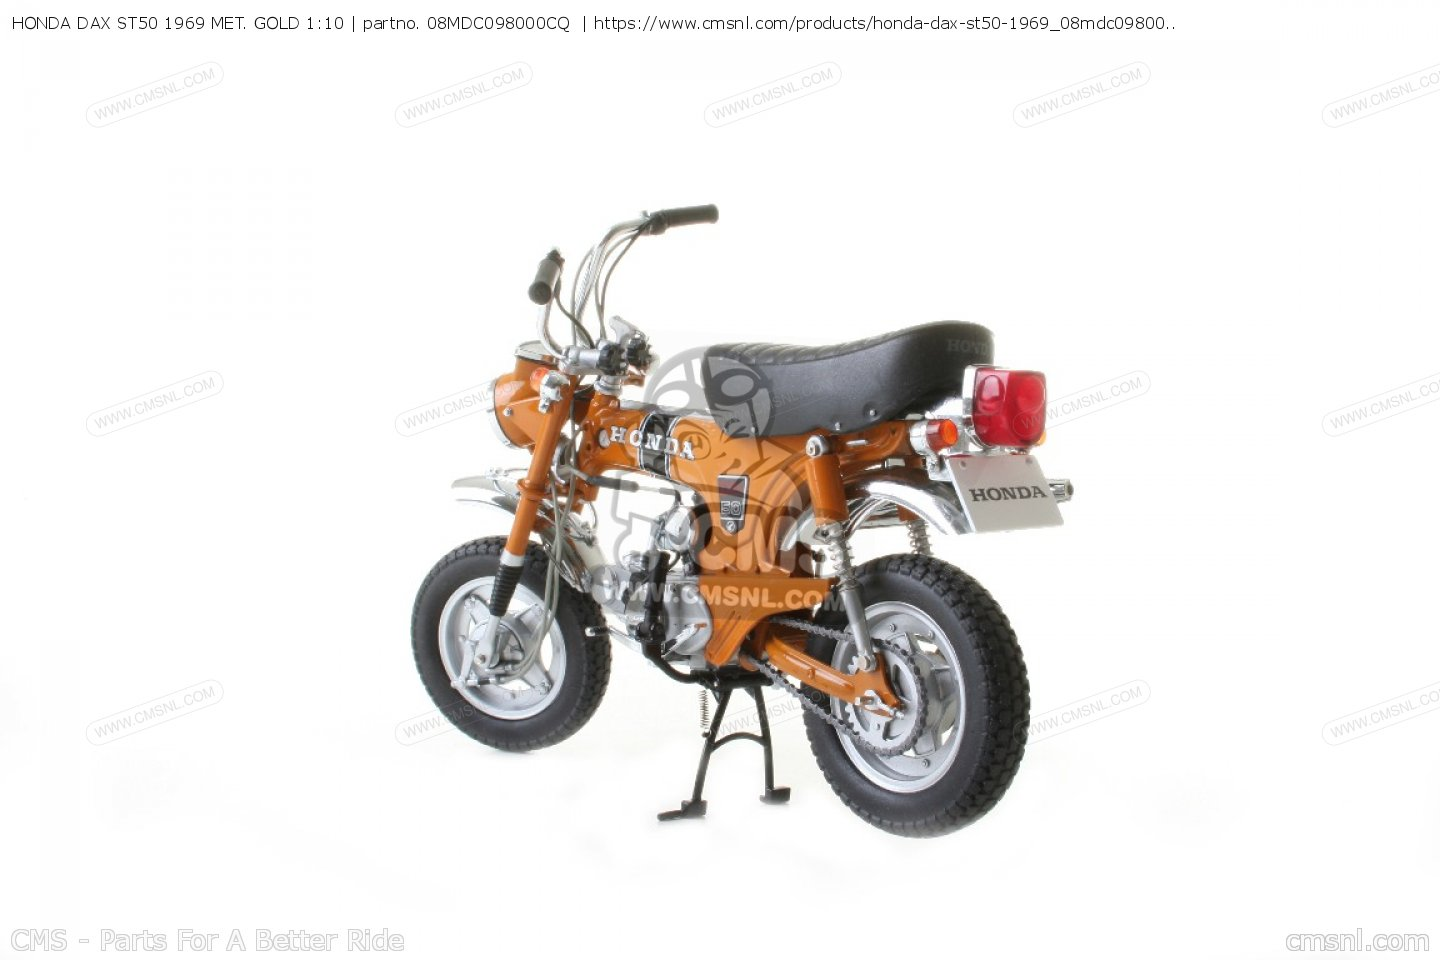 honda dax st50 1969 met gold 1 10 scale models 08mdc098000cq. Black Bedroom Furniture Sets. Home Design Ideas